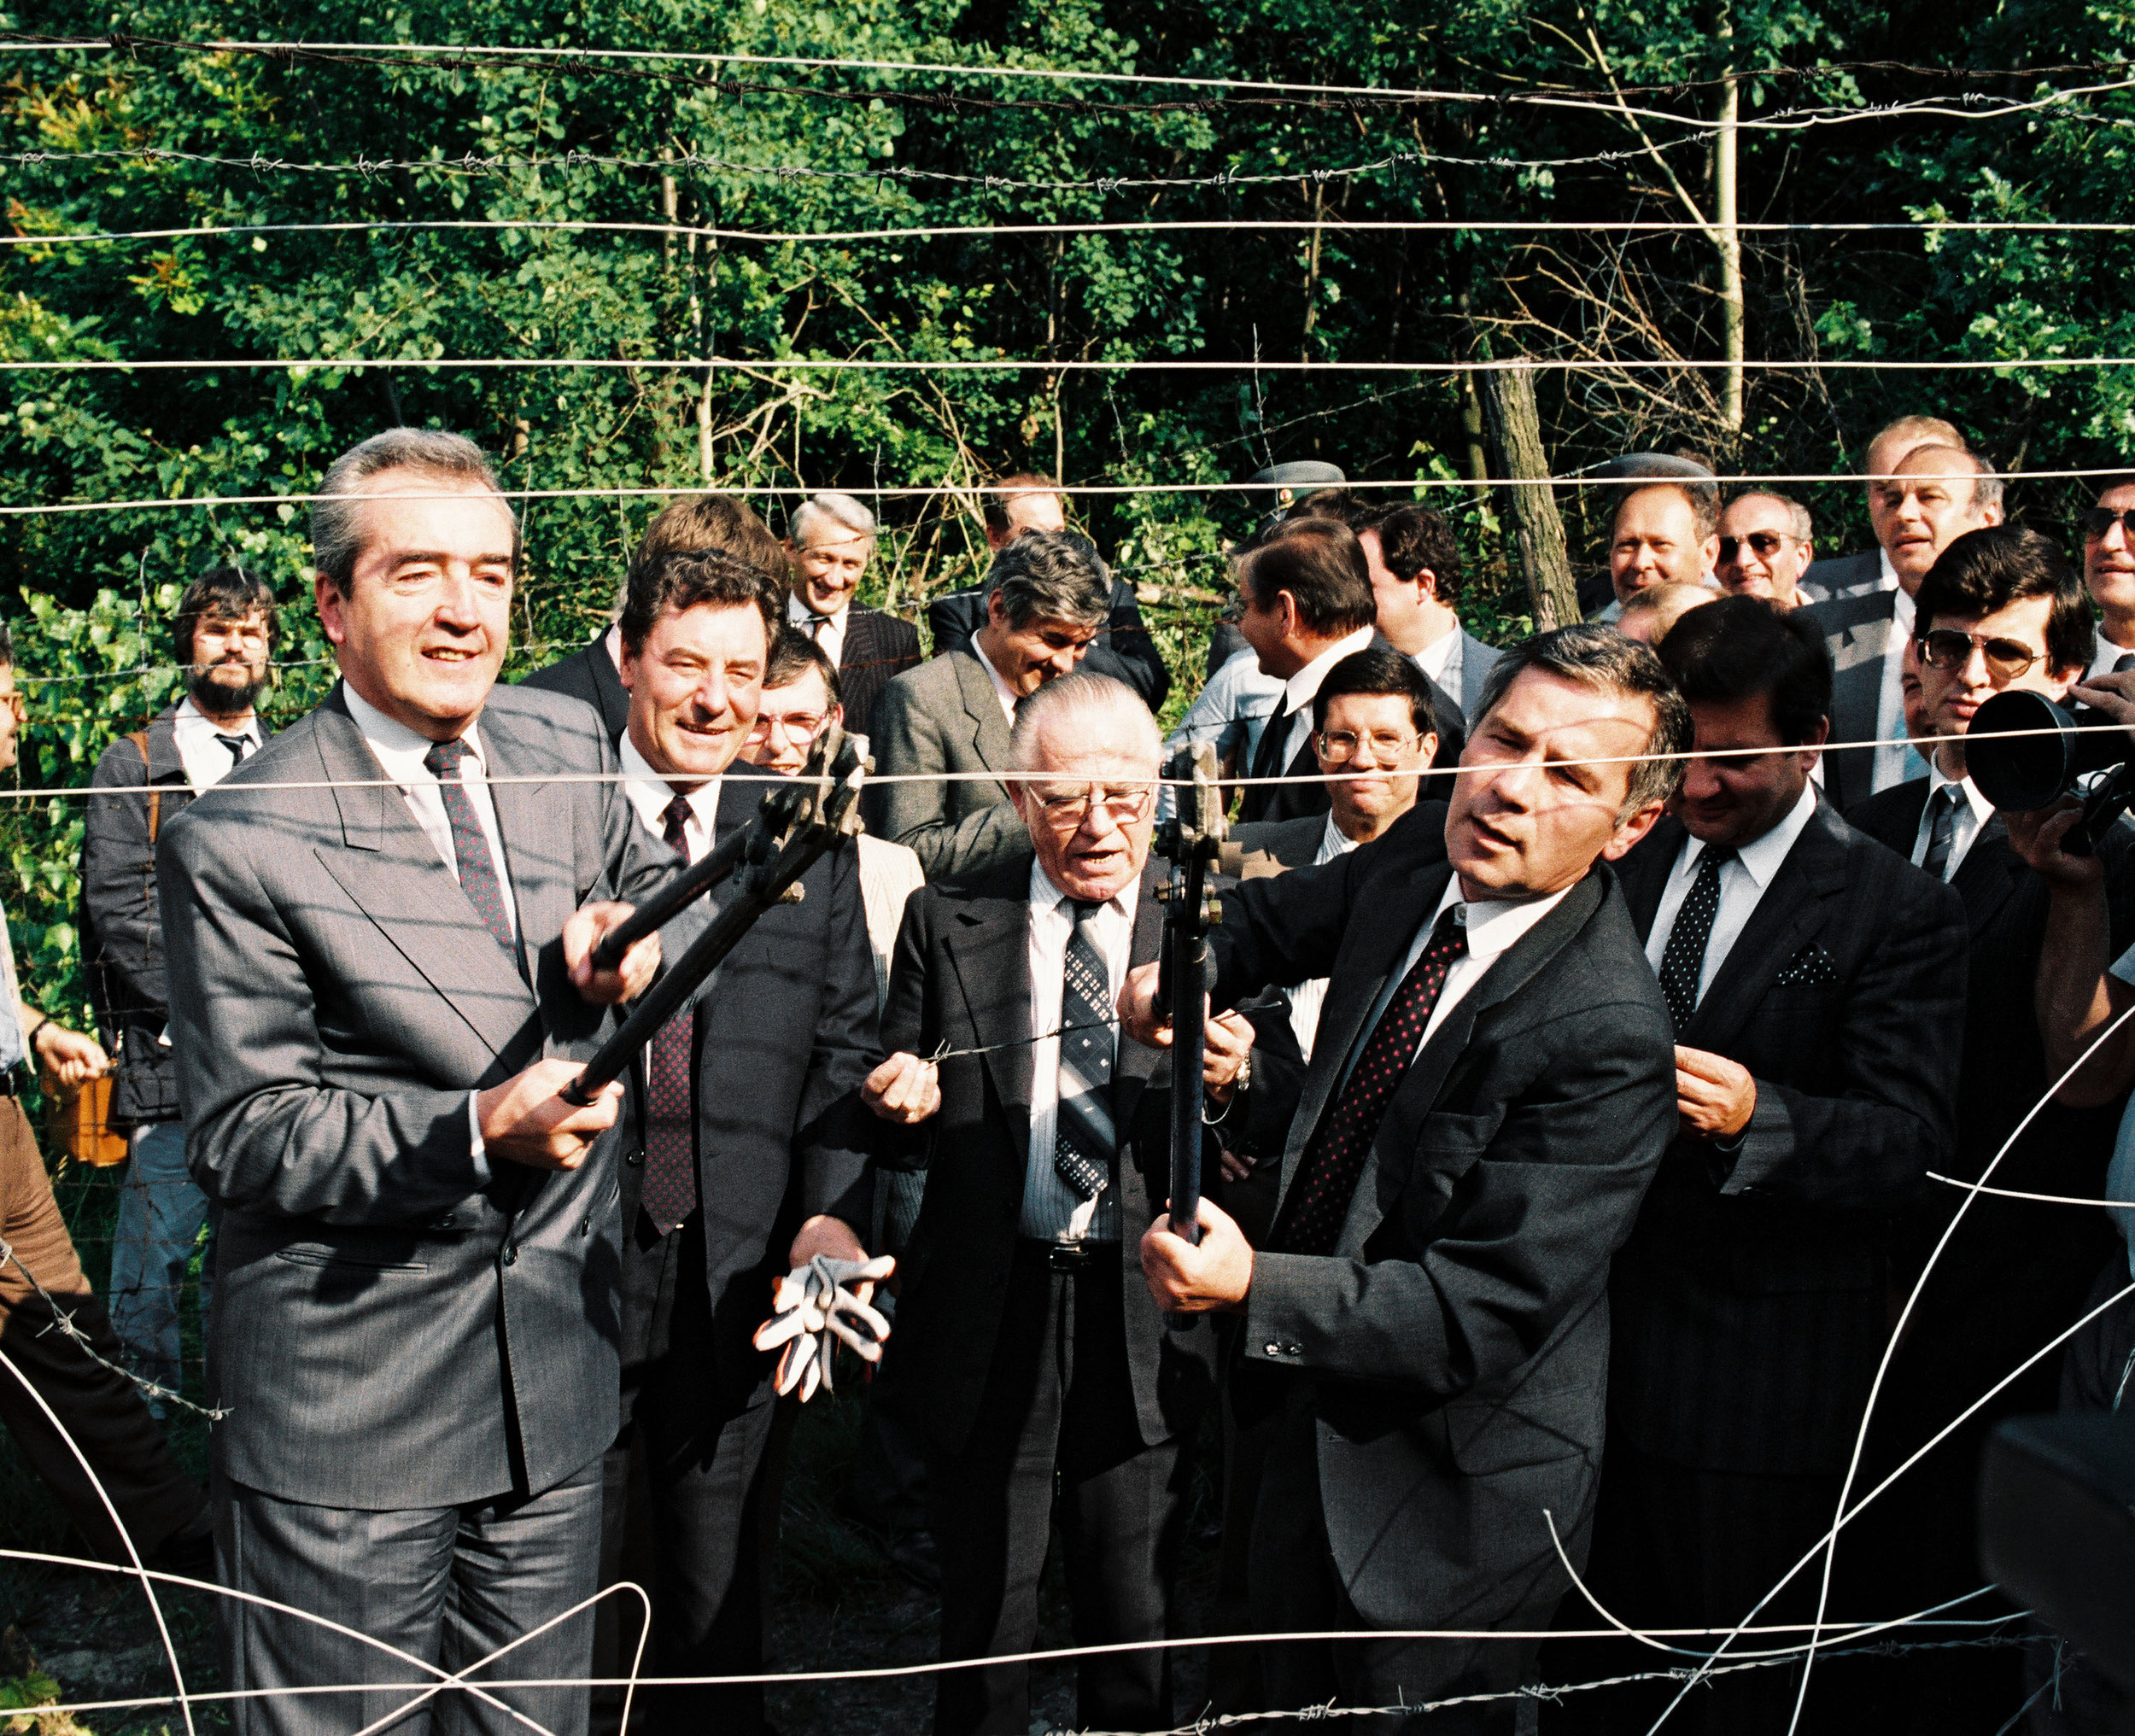 Austrian Foreign Minister Alois Mock (left) and his Hungarian counterpart Gyula Horn cut the Iron Curtain on June 27, 1989  ©  Hopi-Media